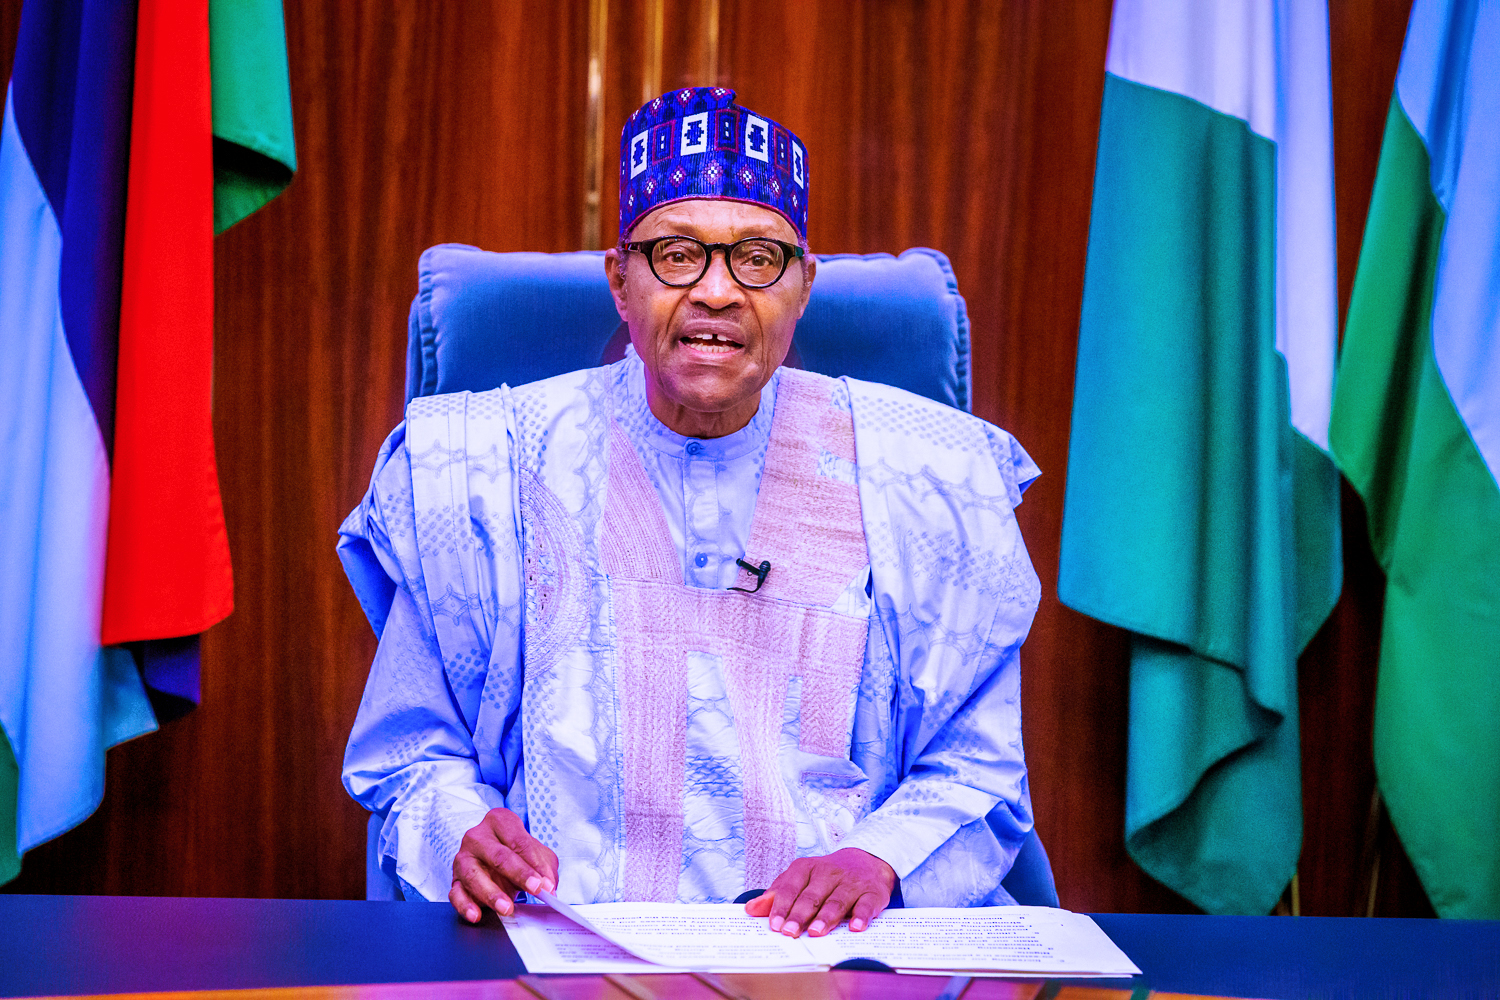 FG offers former N-Power beneficiaries permanent job opportunities